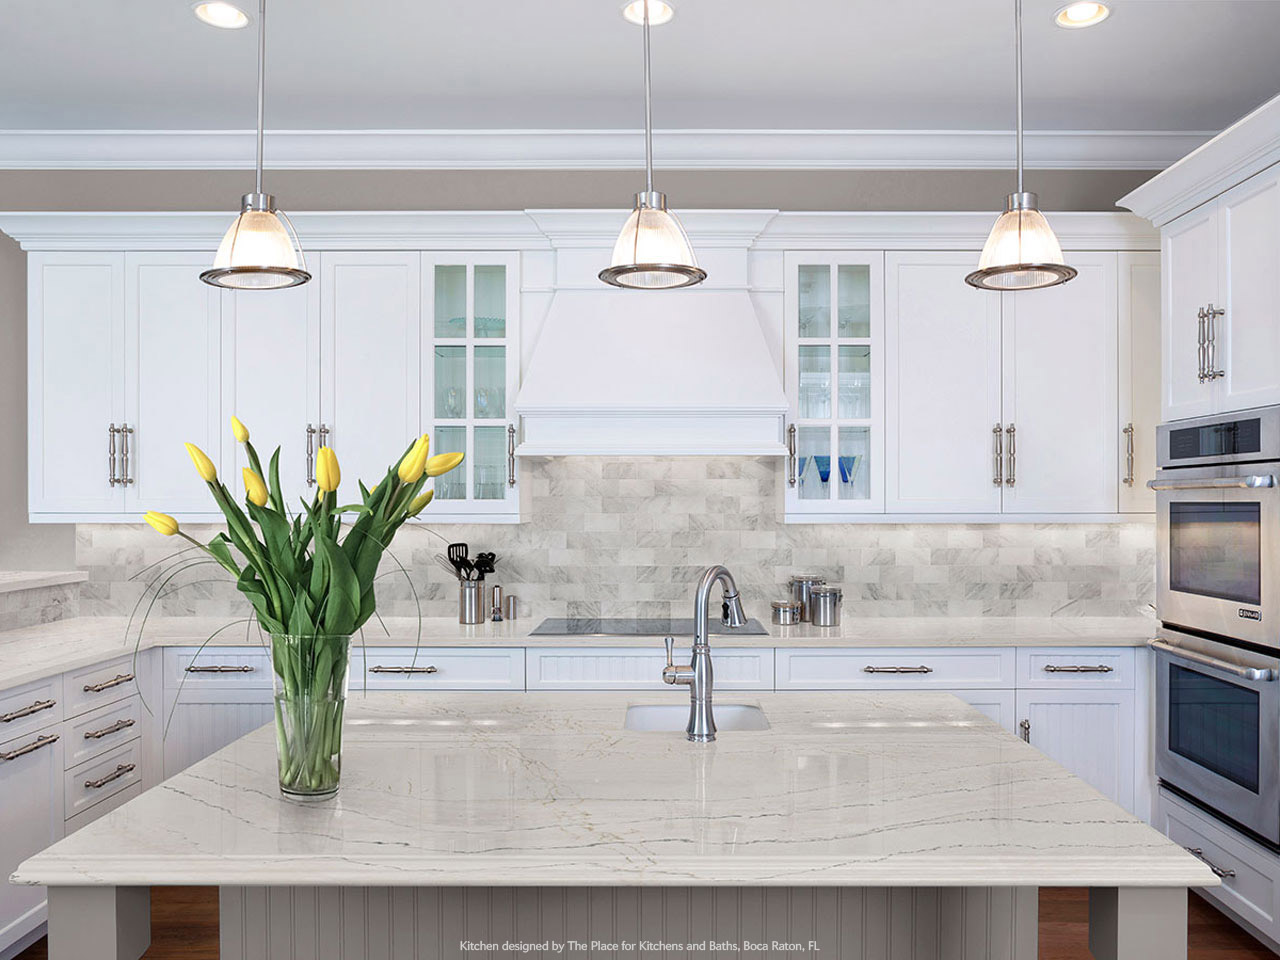 Top Remodeling Companies Choose Cambria Quartz | Spacemakers ...